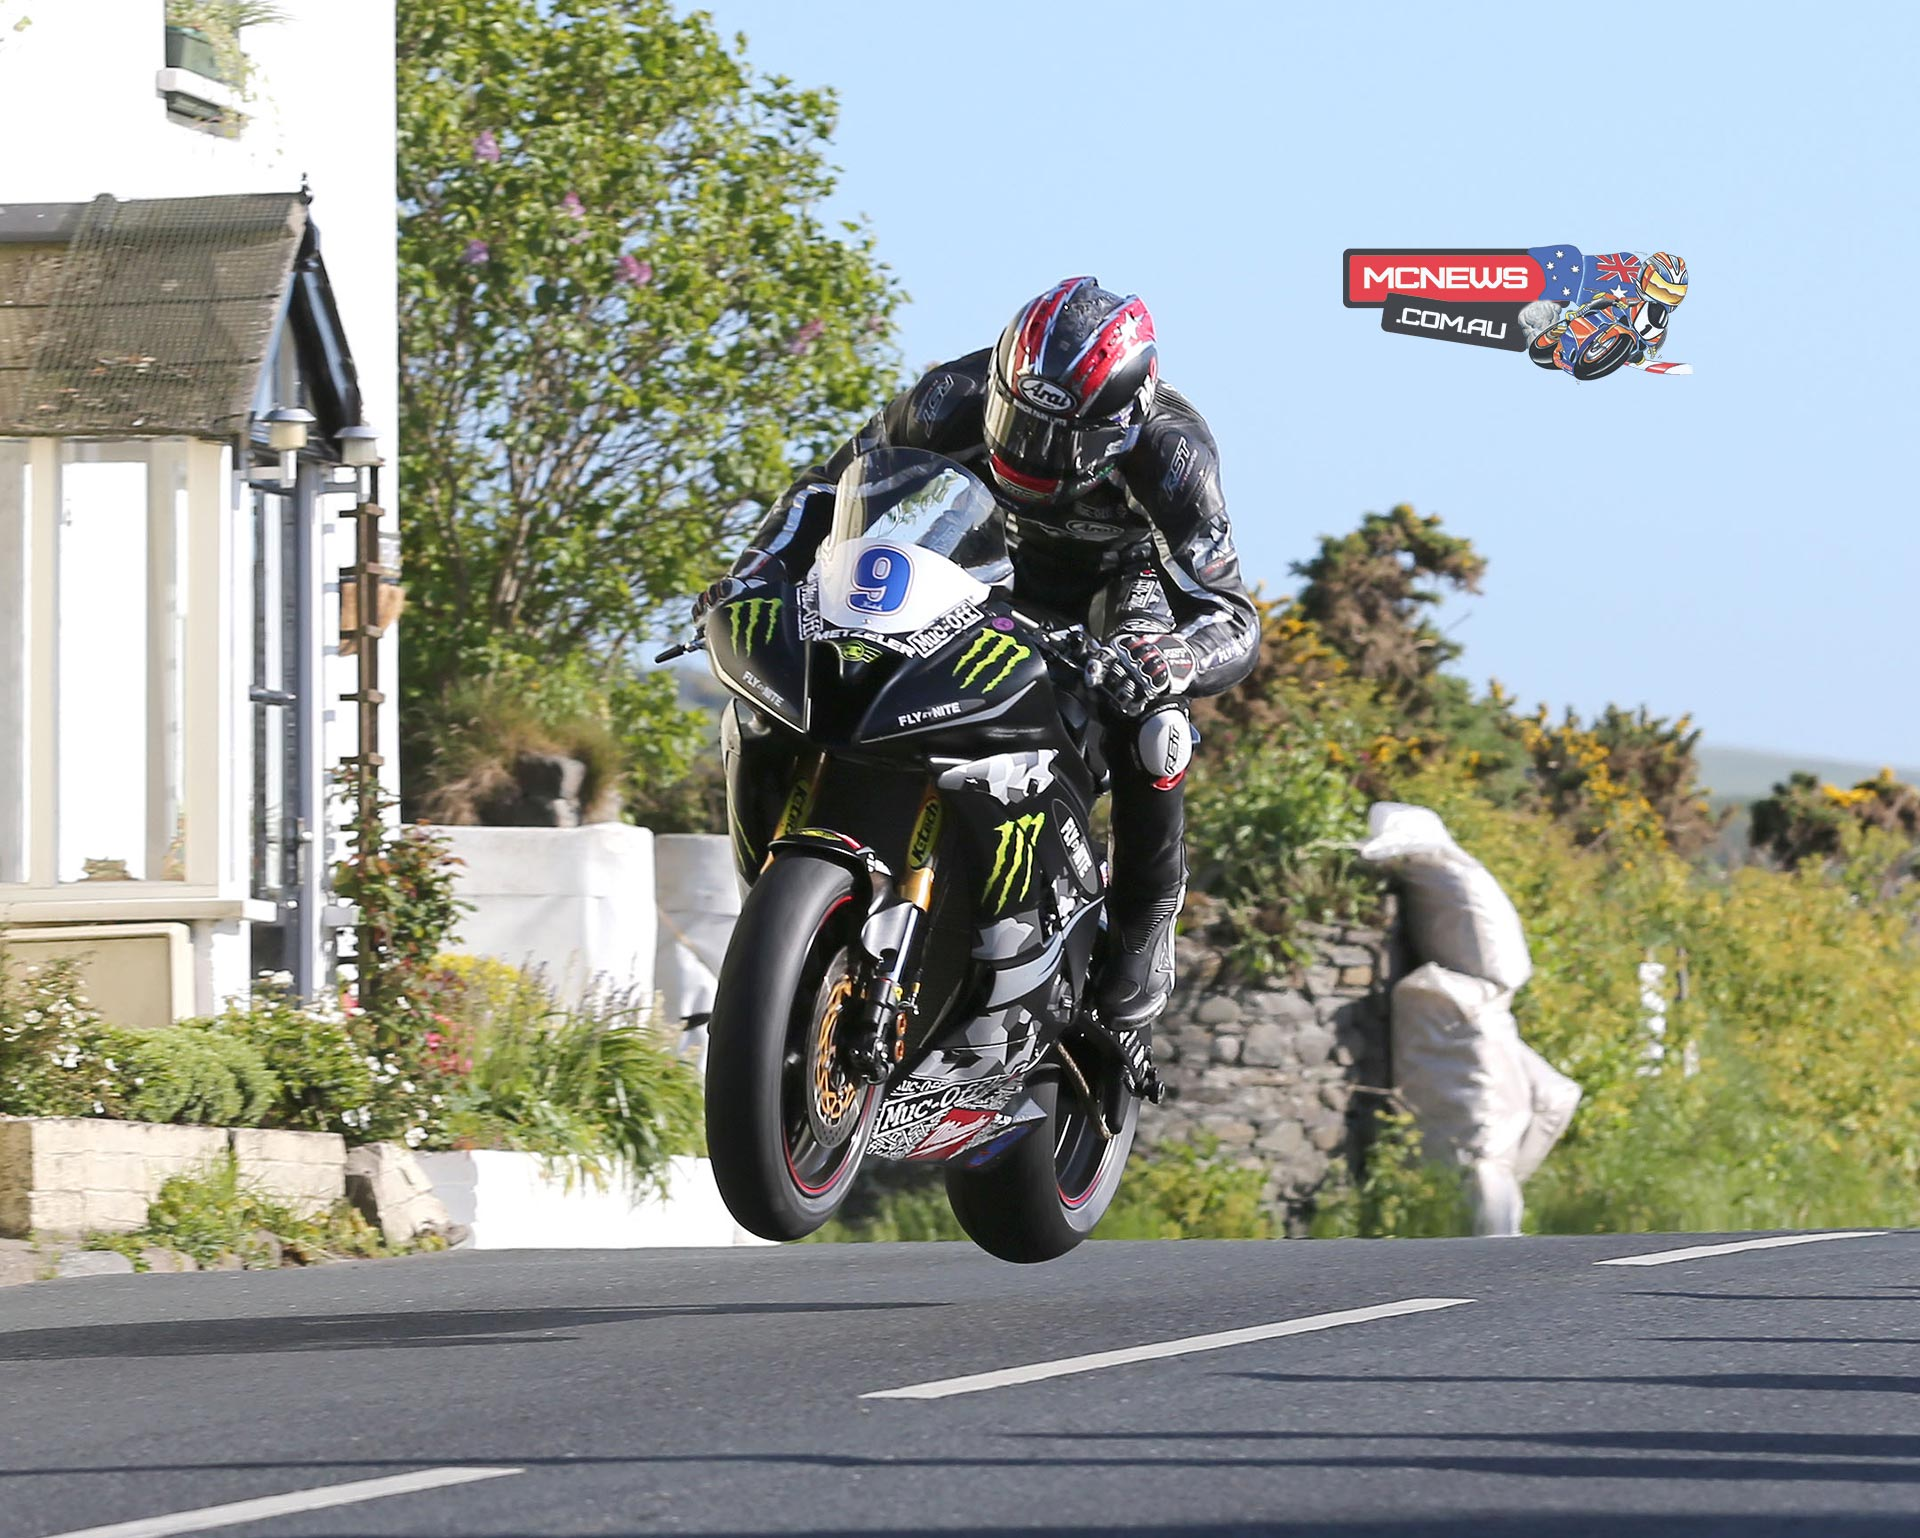 A focused Team Traction Control crew got Ian Hutchinson back on the road in rapid time and he continued to gather incredible momentum to gap his opposition and maintain his position at the top of the times throughout the final two laps.